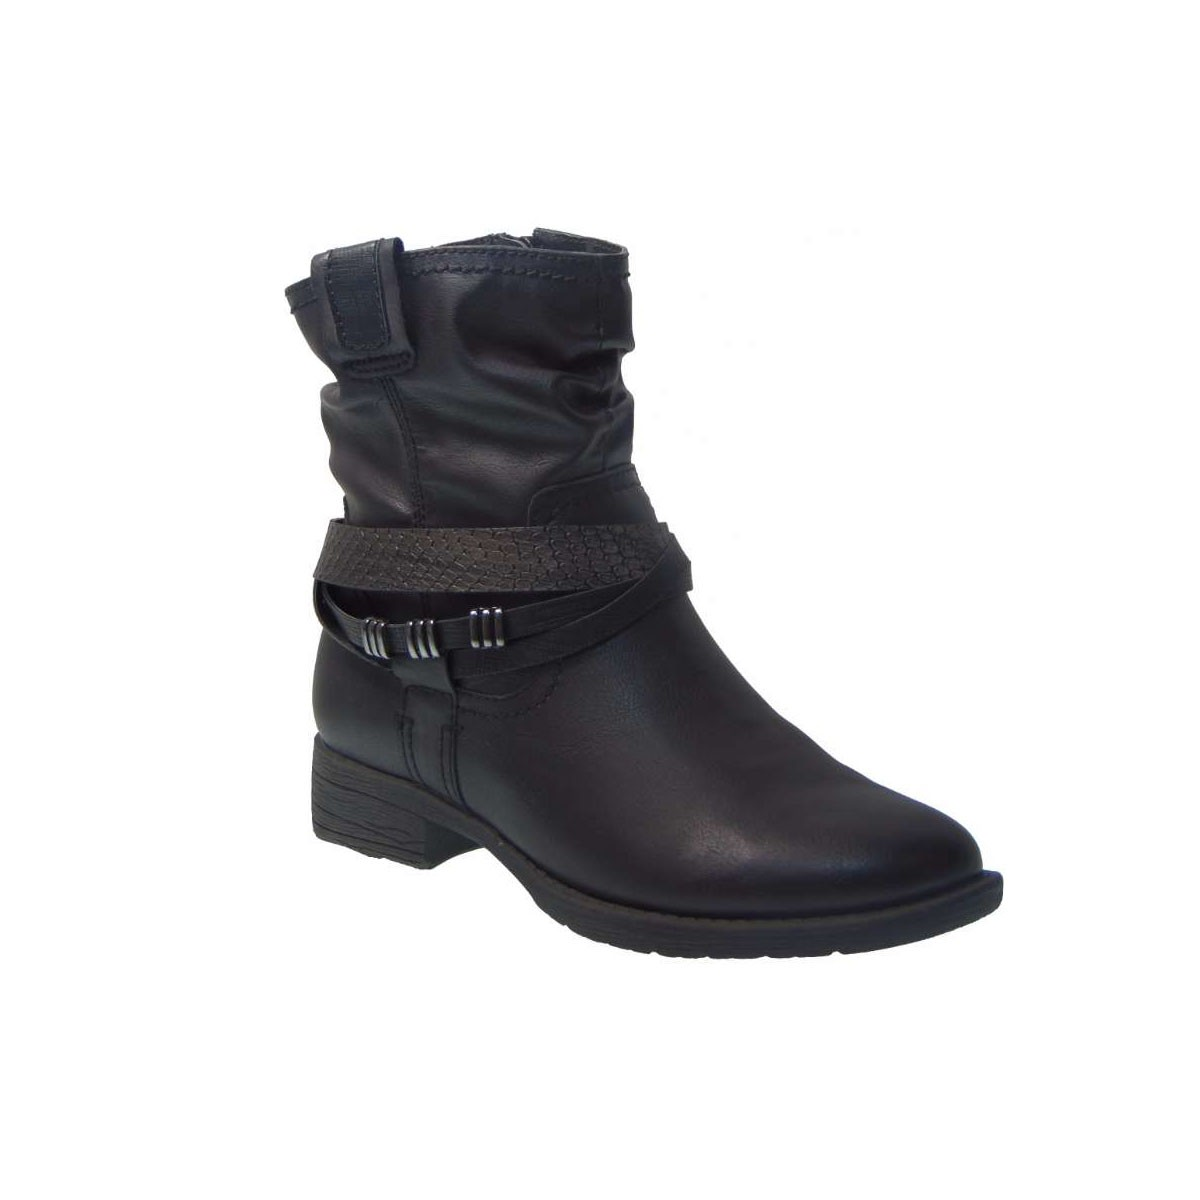 18cdcea3eef Γυναικεία Παπούτσια - Roe Shoes Collection